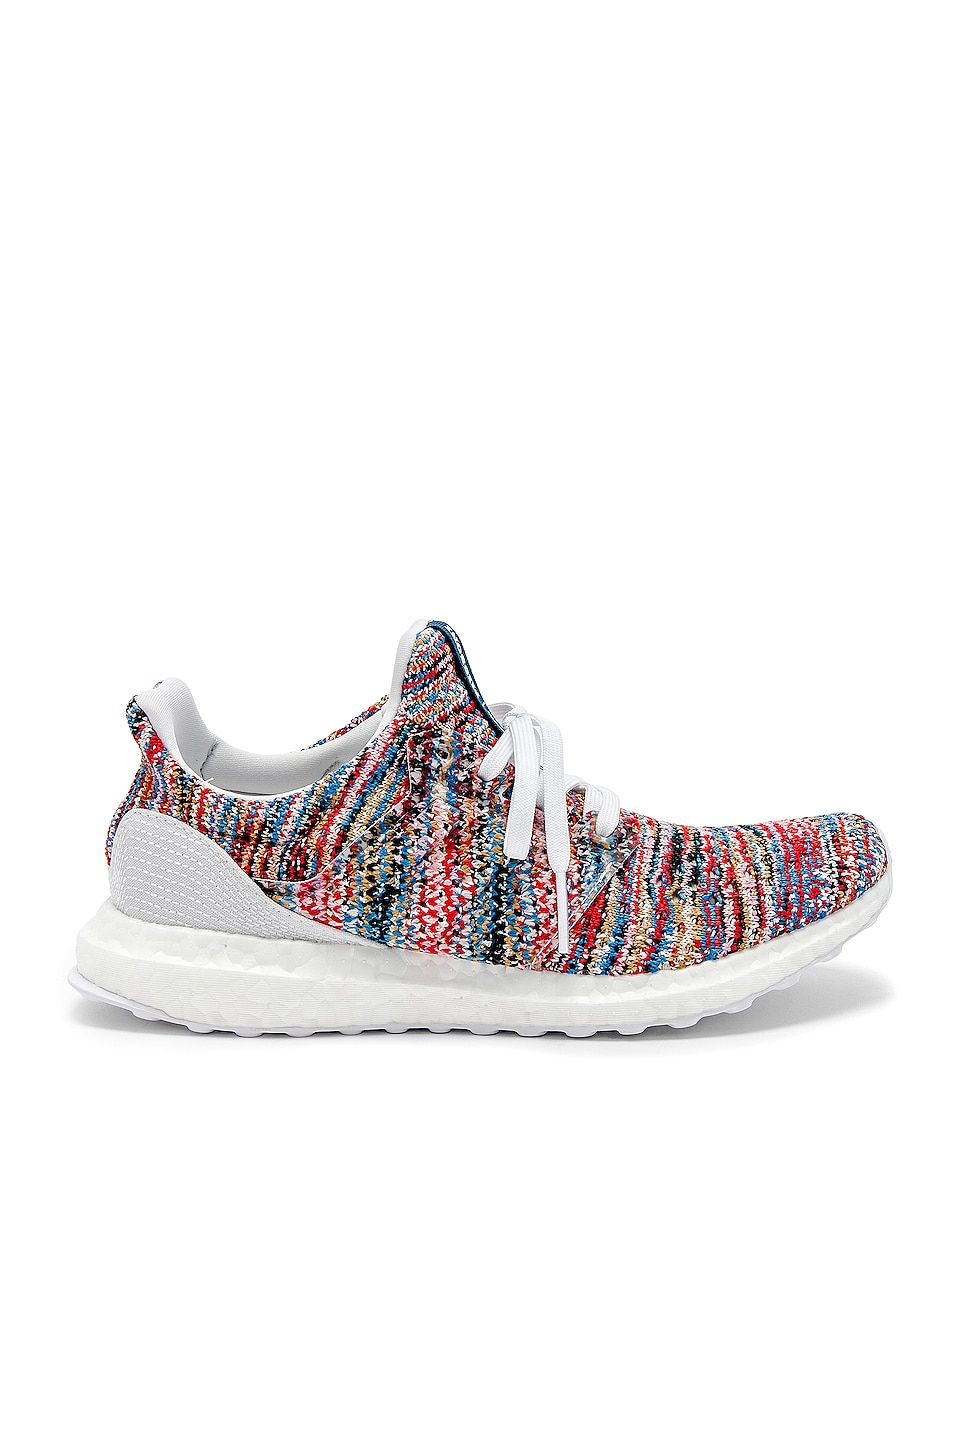 adidas by MISSONI Ultraboost Clima Sneaker in White & Cyan & Active Red